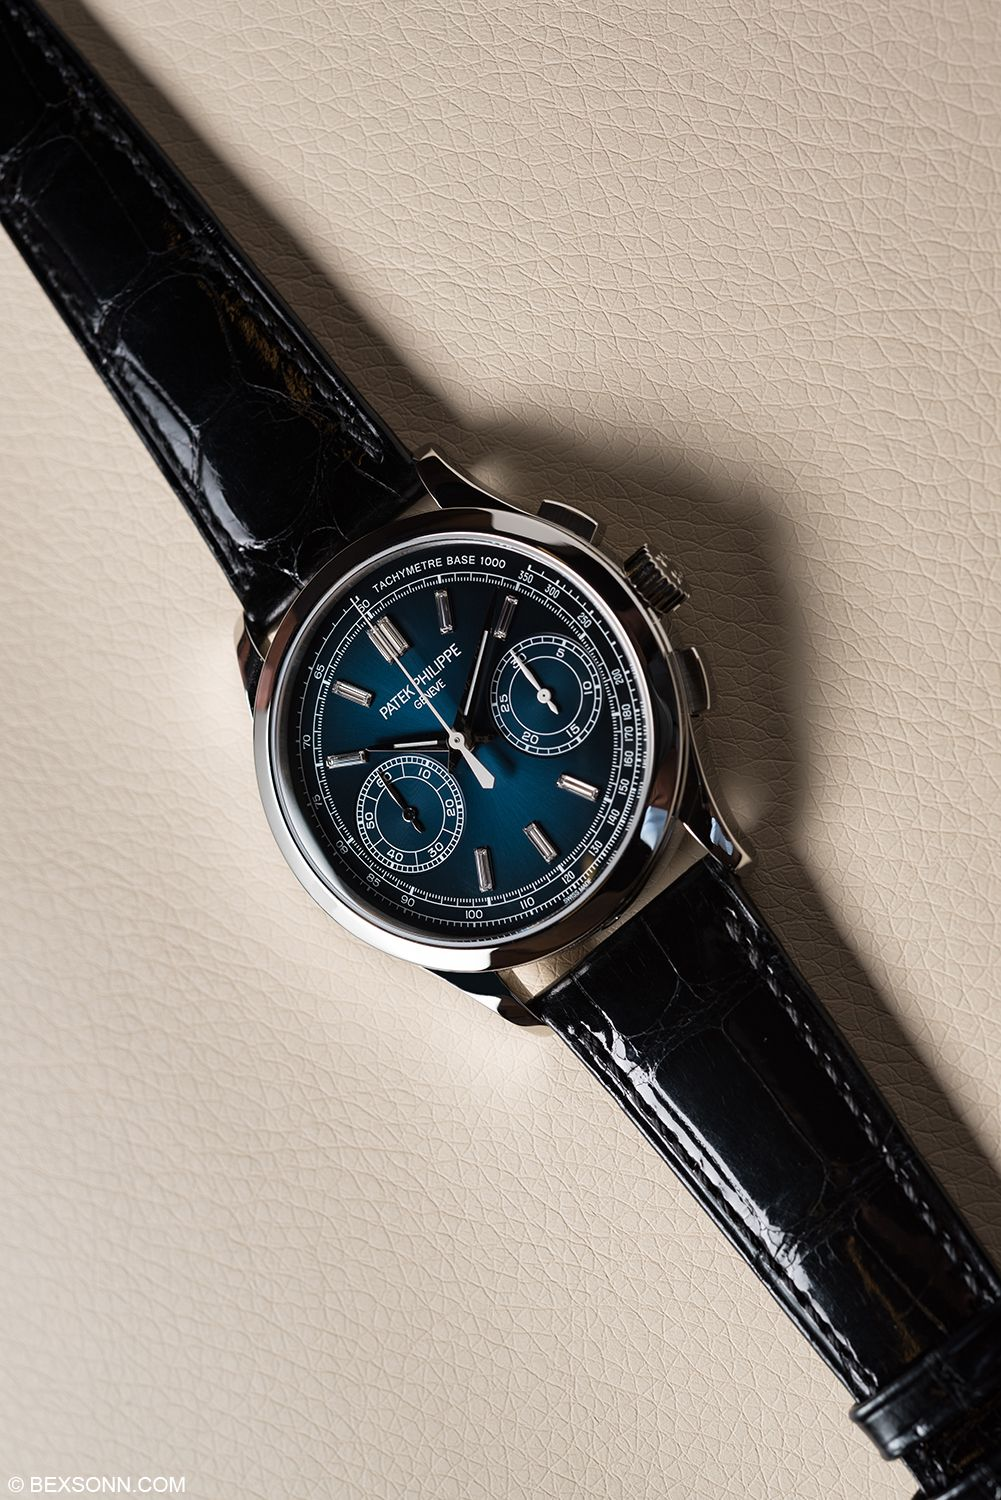 Watch Post: The New Patek Philippe Chronograph 5170P Read More